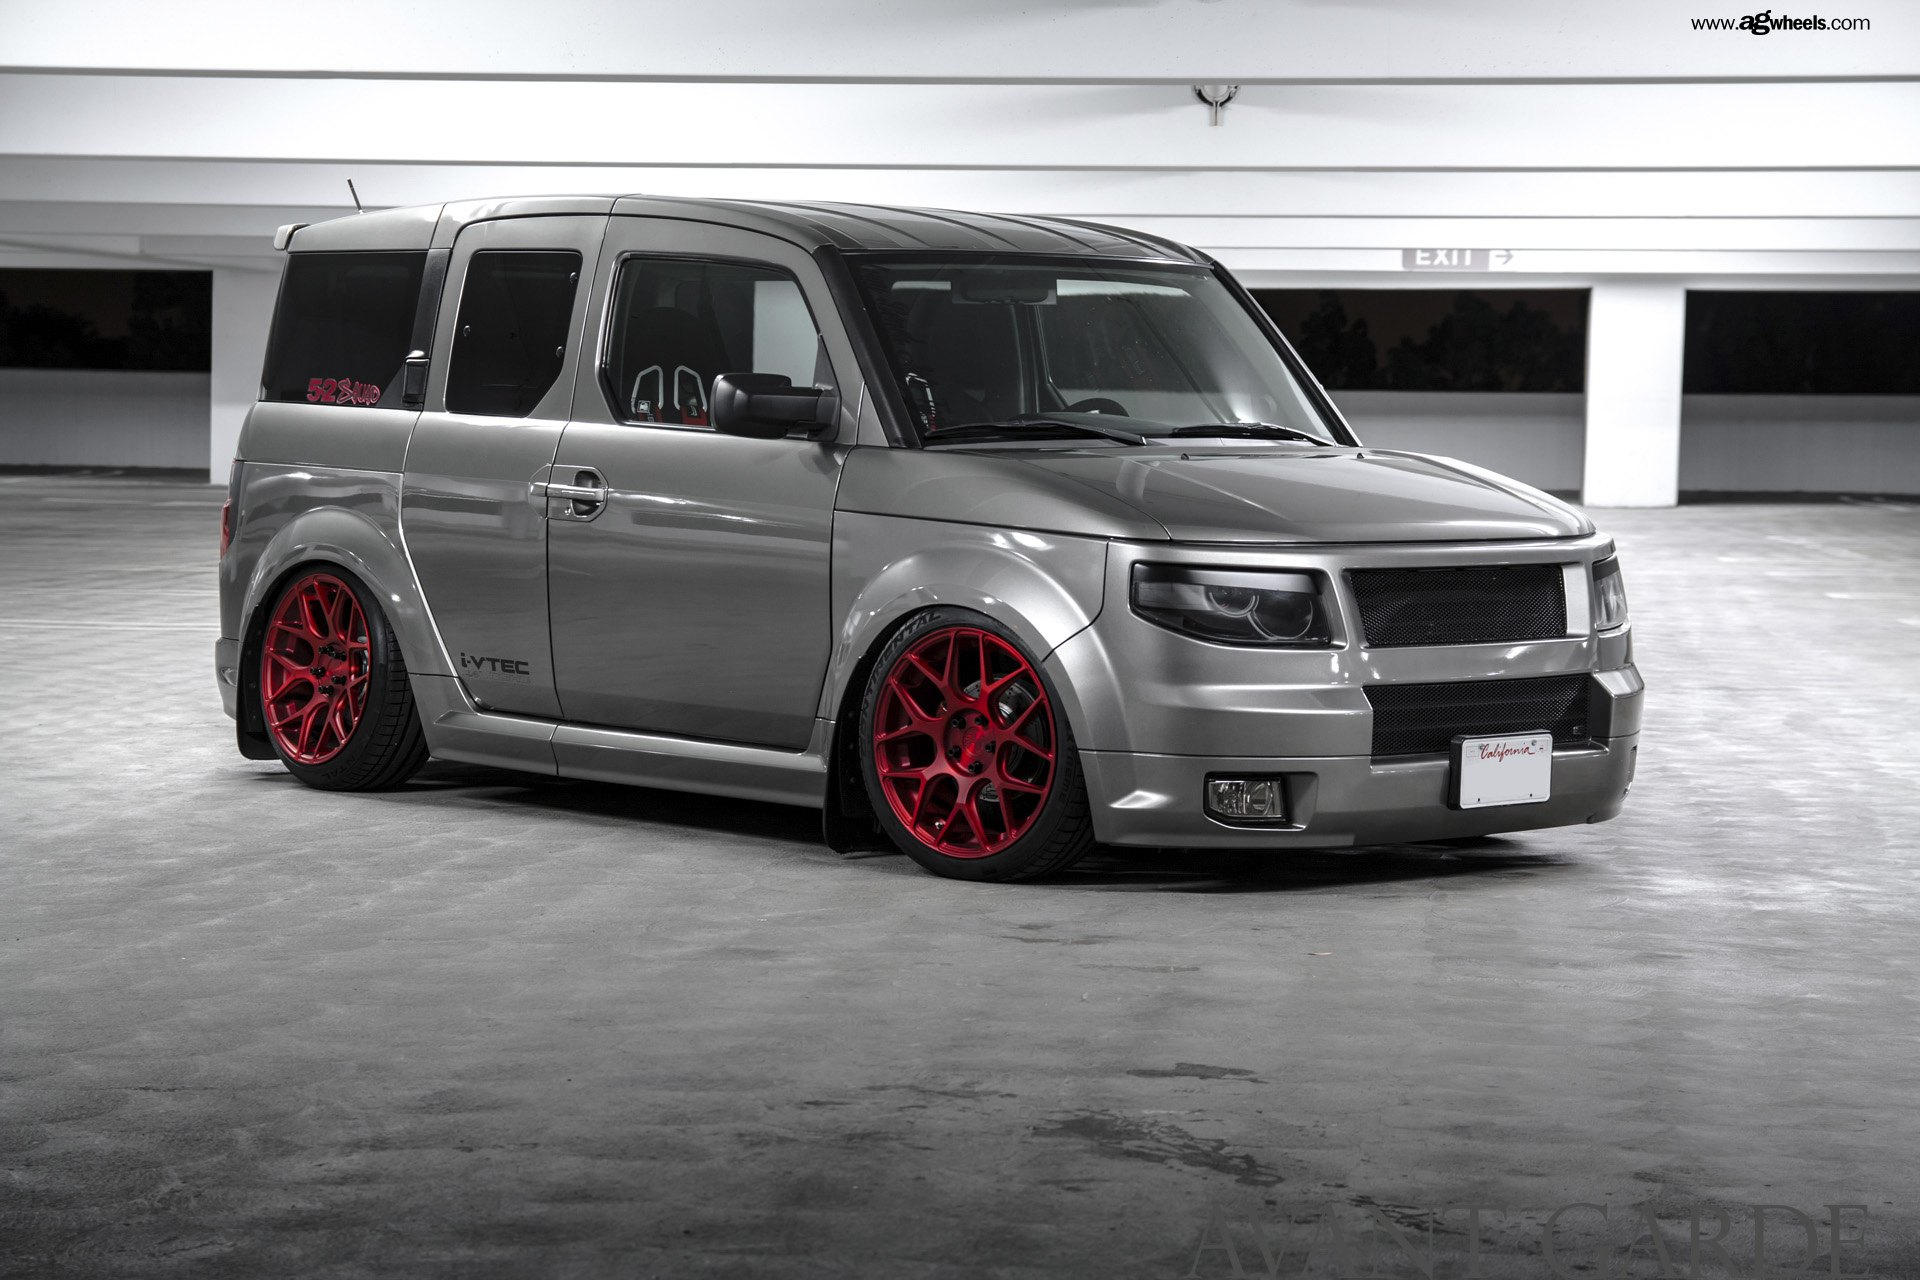 Honda Element Camper >> Gray Honda Element Taken to Another Level with Custom Body Kit and Matte Red Wheels — CARiD.com ...